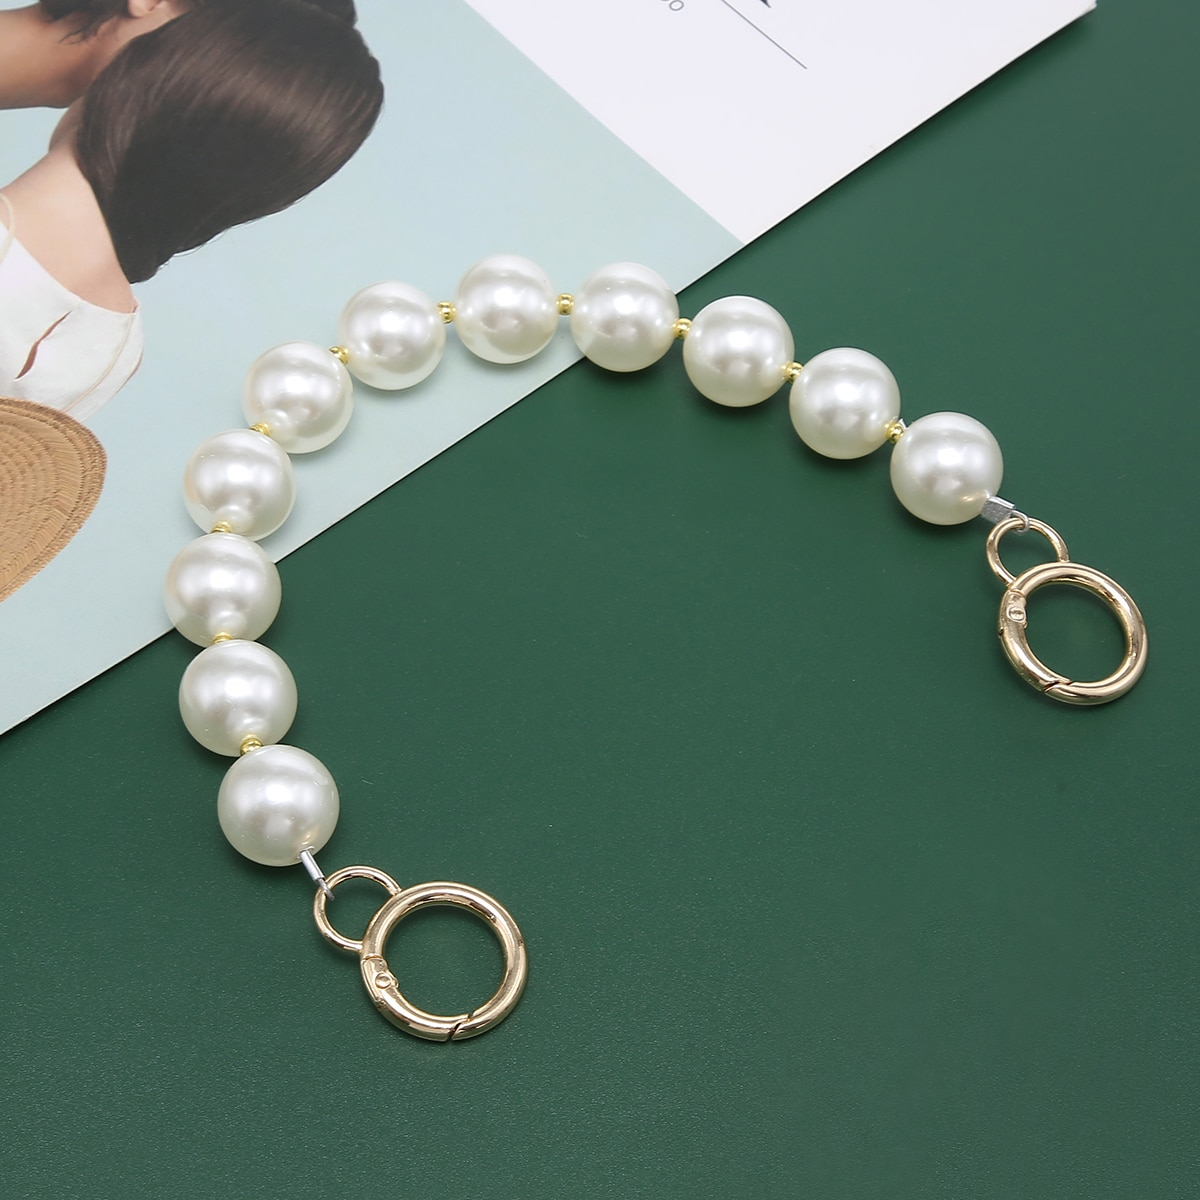 Faux Pearls Design Bag Strap, SHEIN  - buy with discount